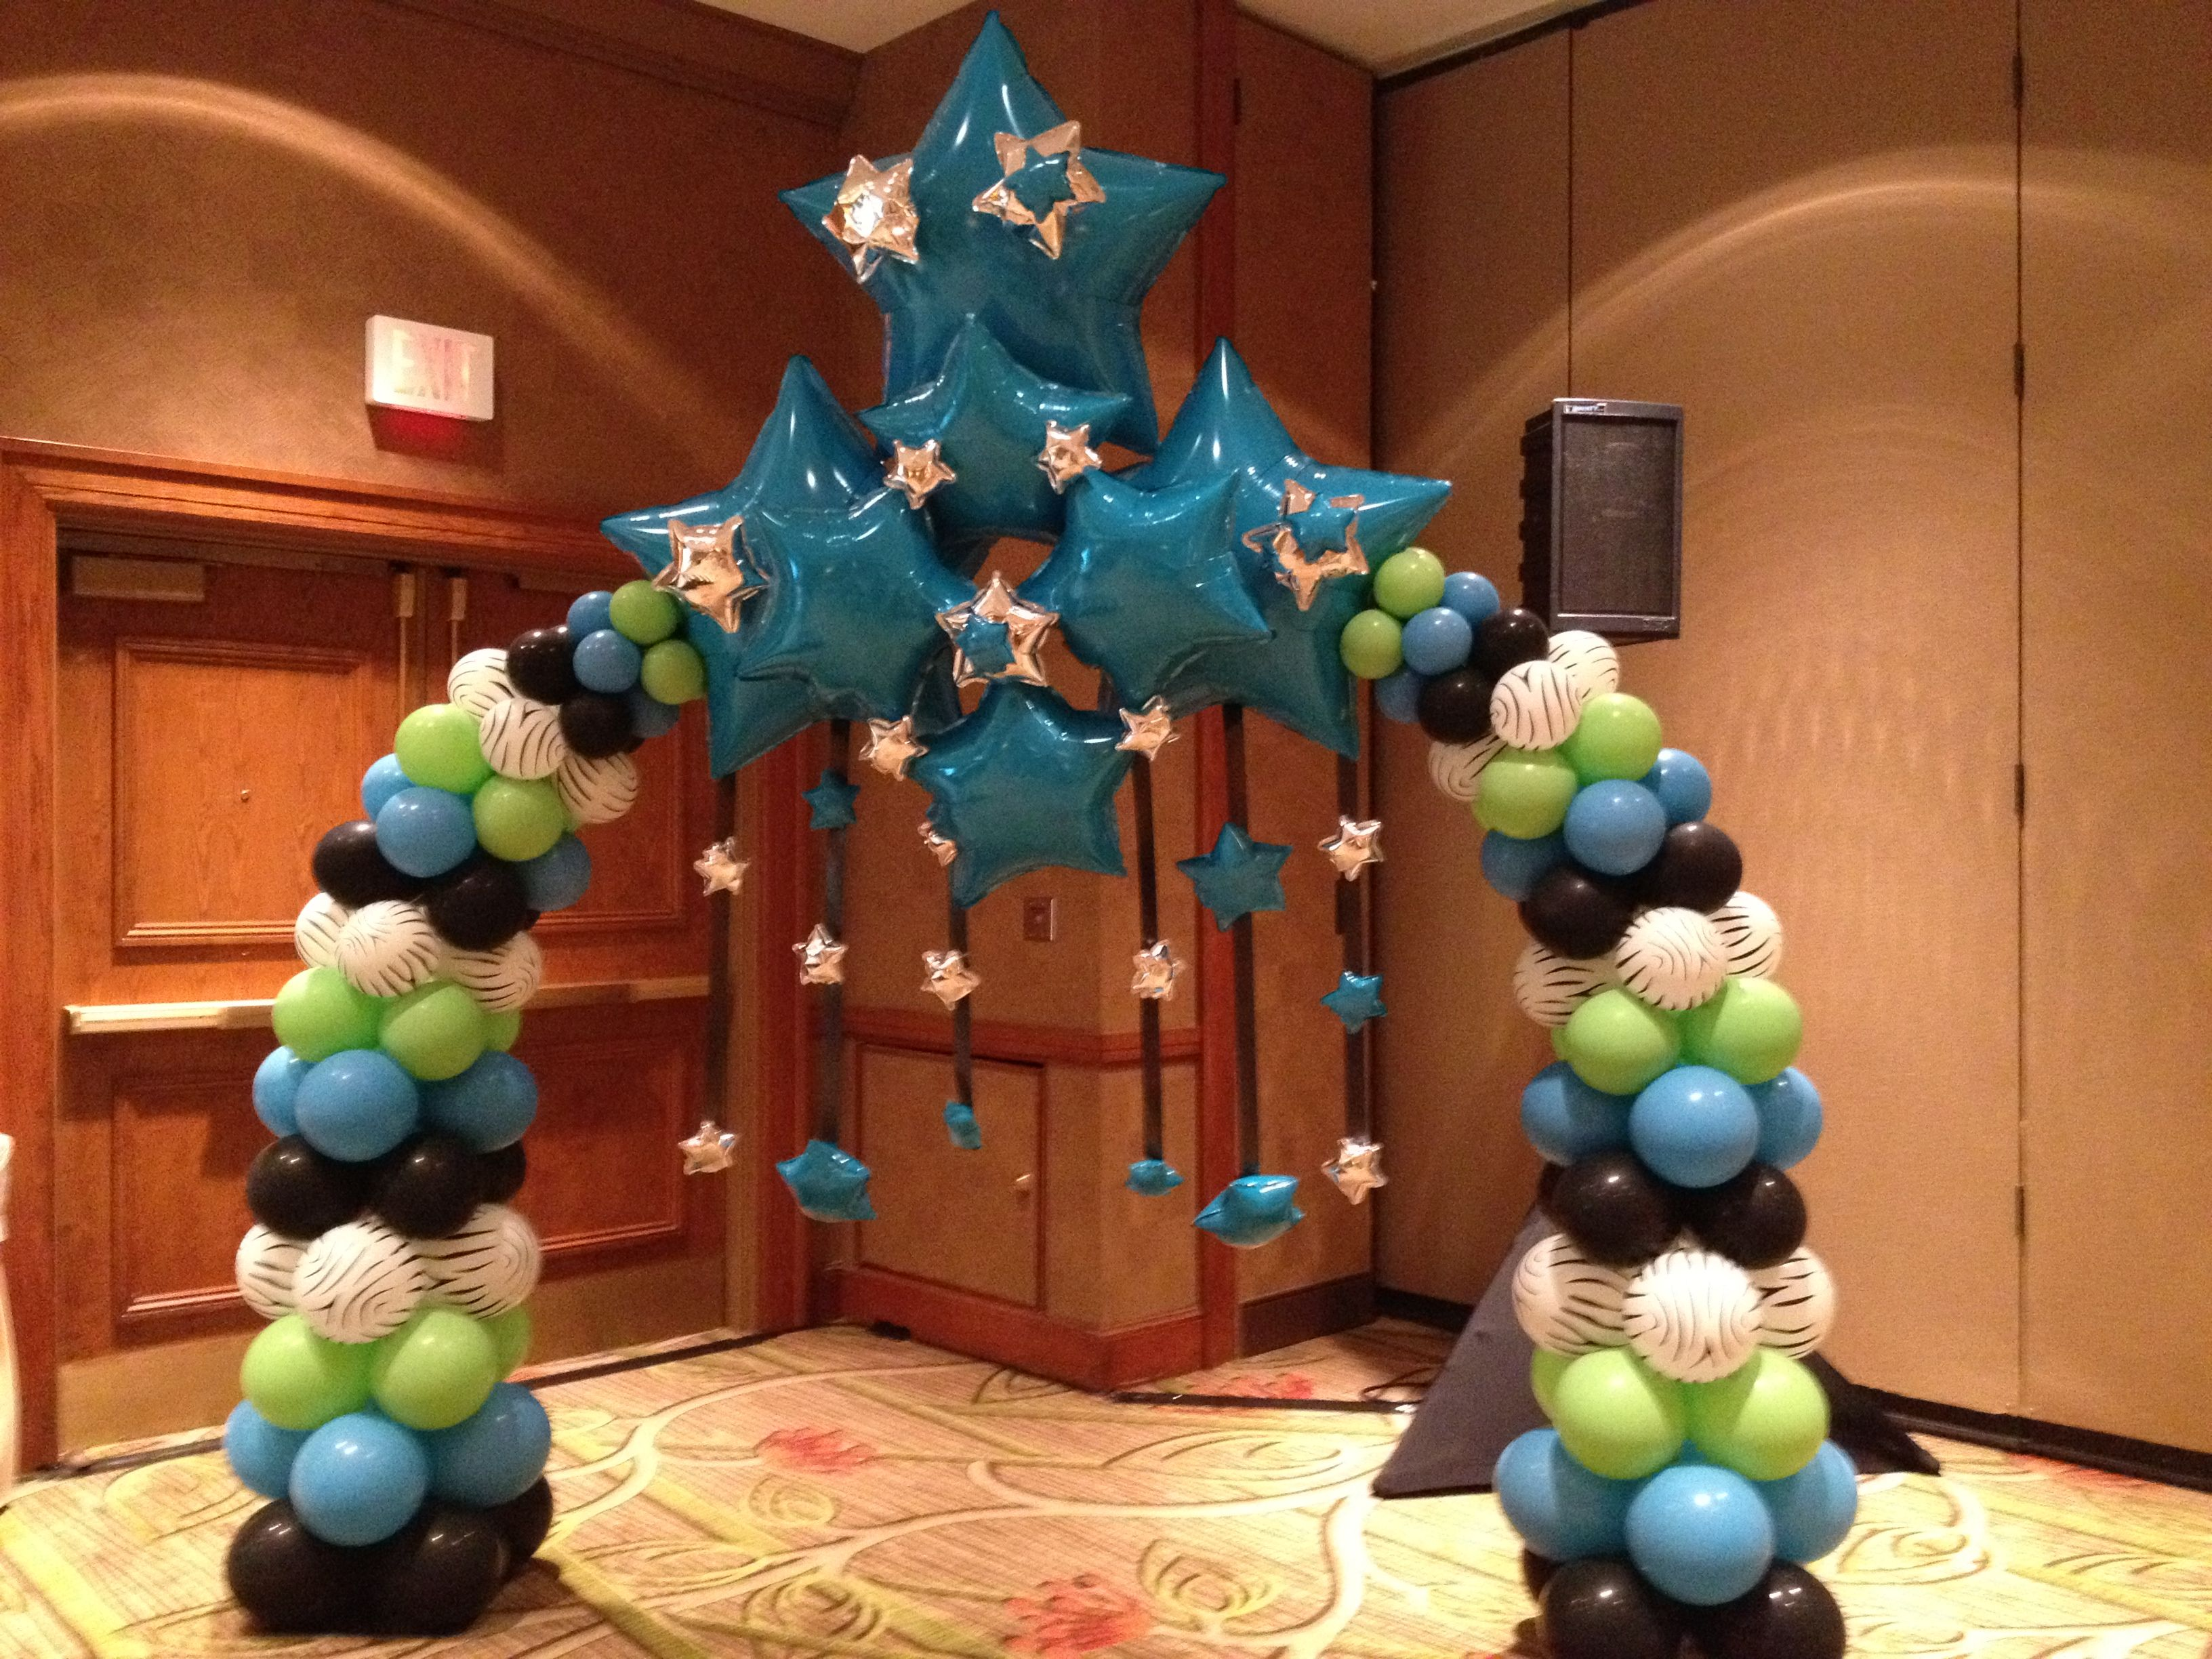 Arches Balloon Decor Decoration Delivery Balloons Houston Centerpieces Decorations Birthday Party